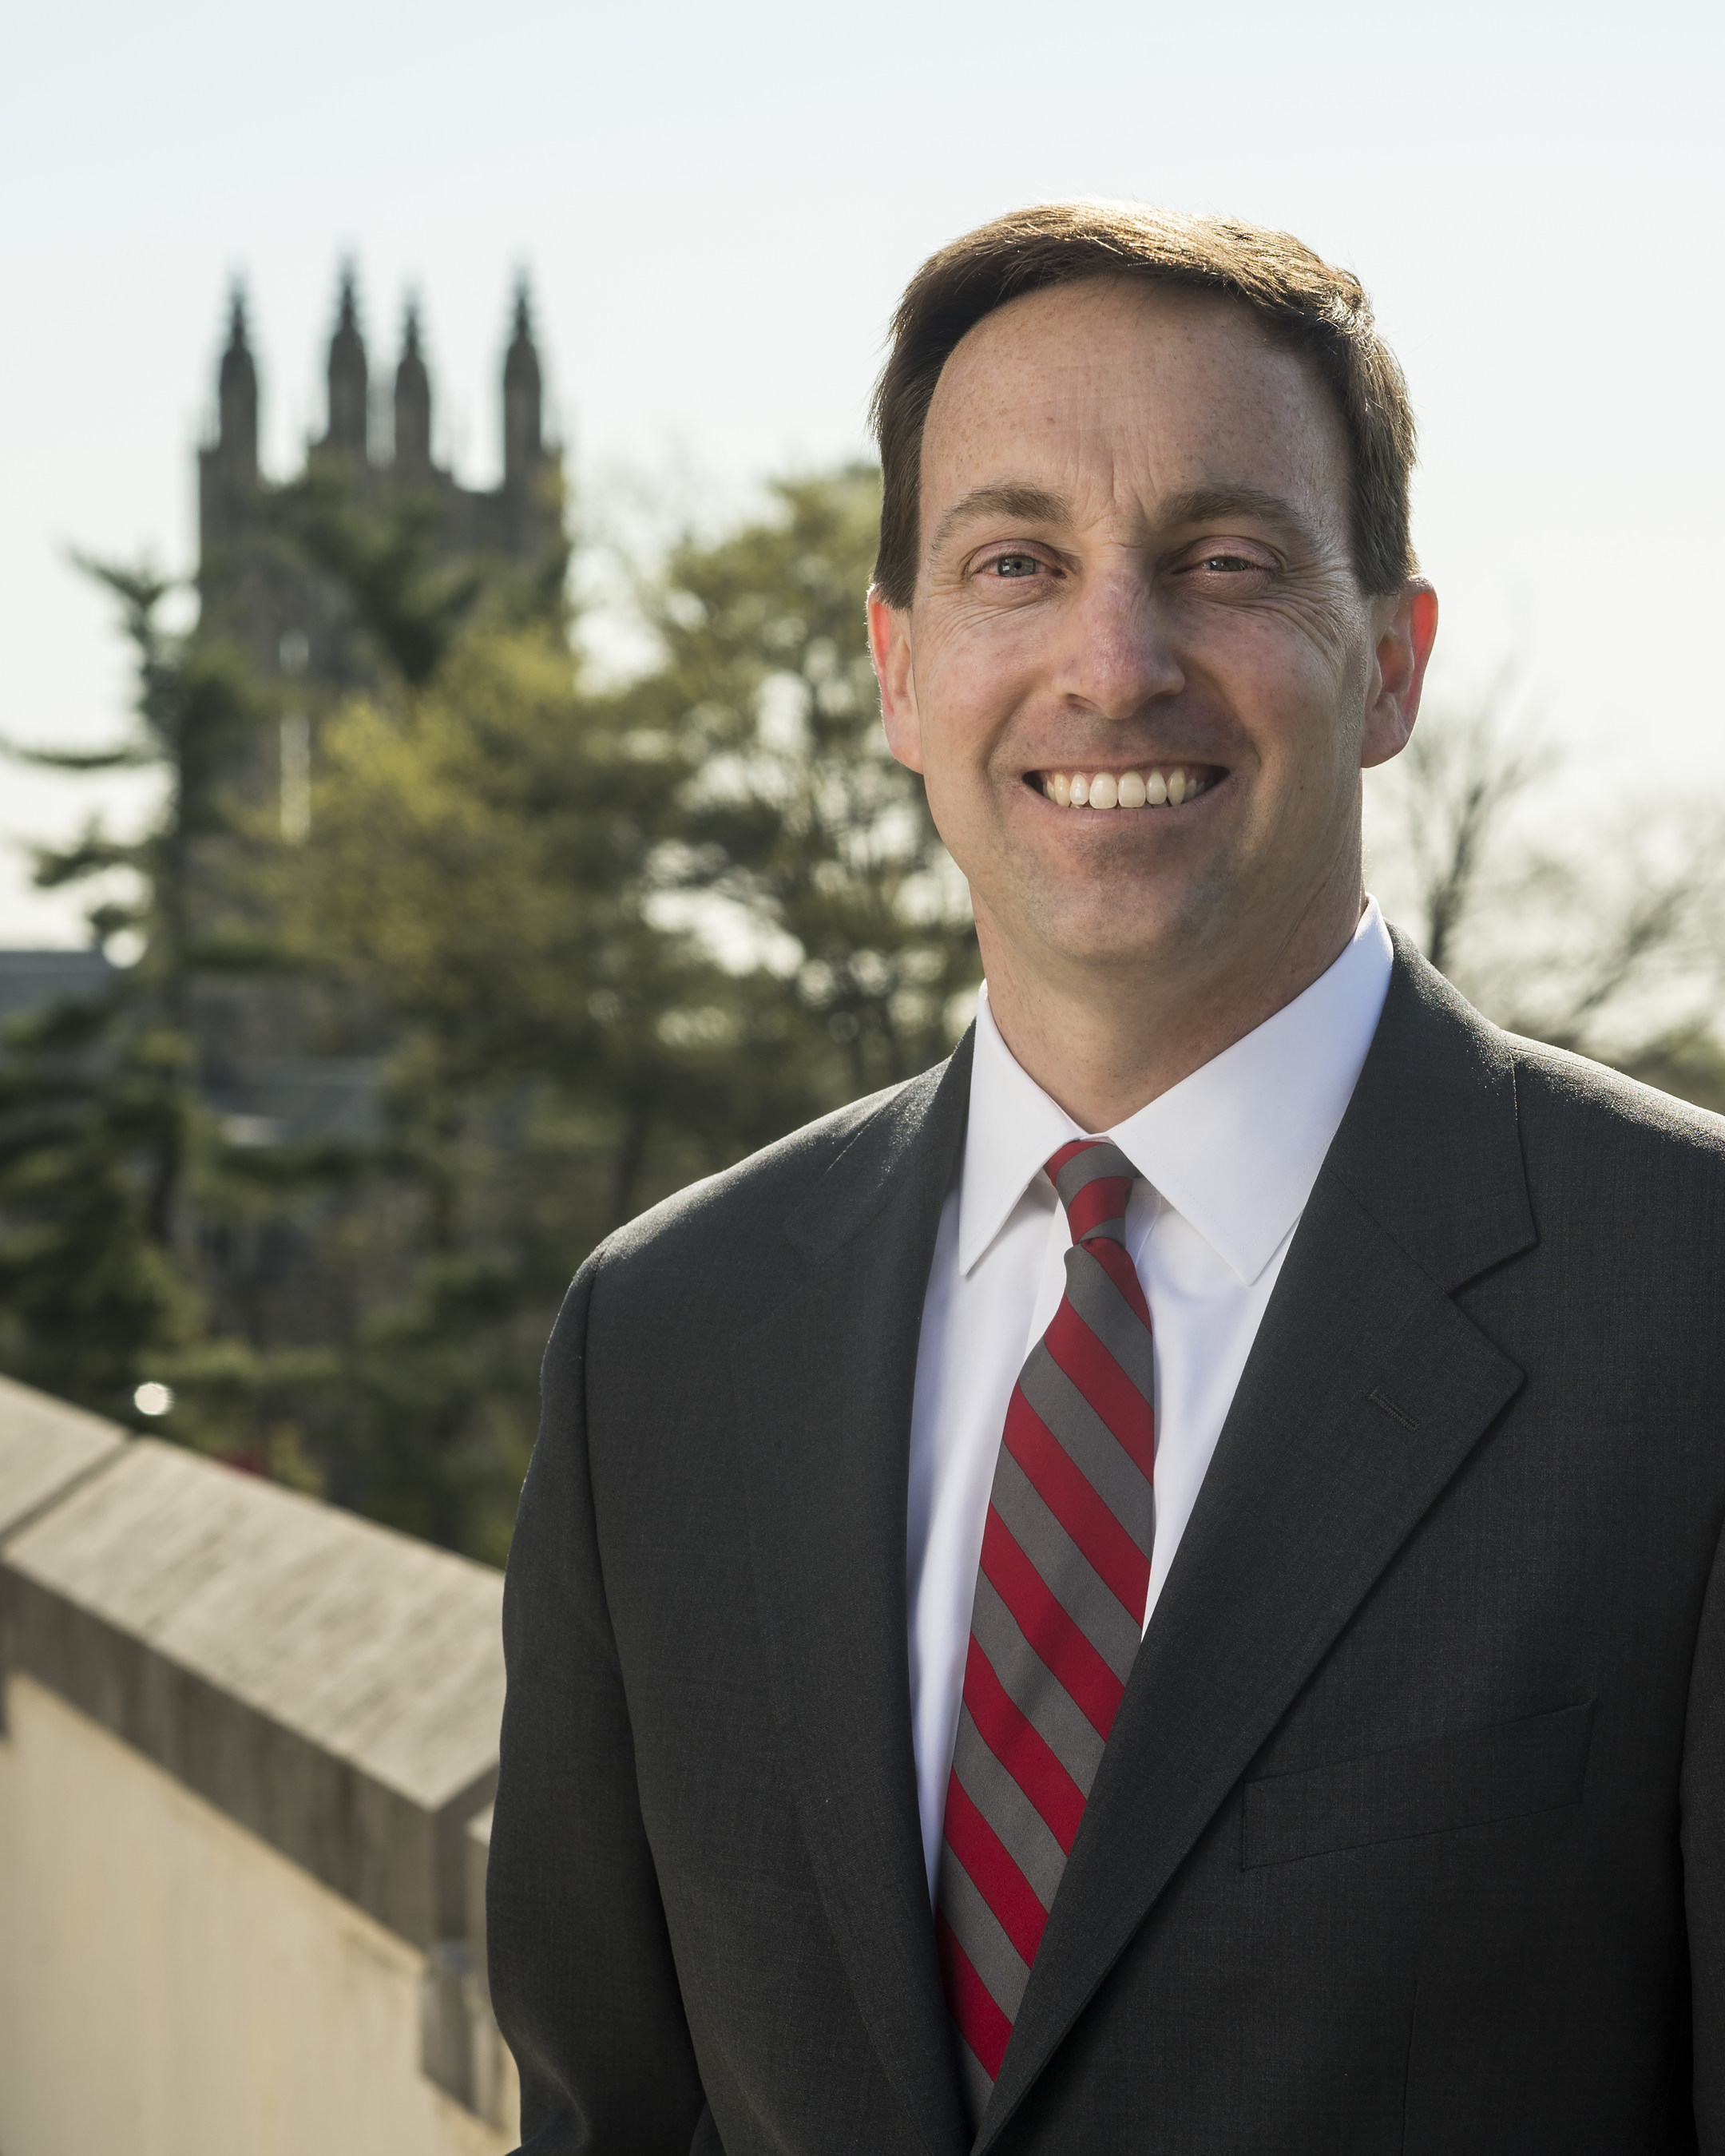 Mark C. Reed, Ed.D., is the president-elect of Saint Joseph's University in Philadelphia. Reed is the first layperson to be elected president in the 164-year history of the Jesuit institution.